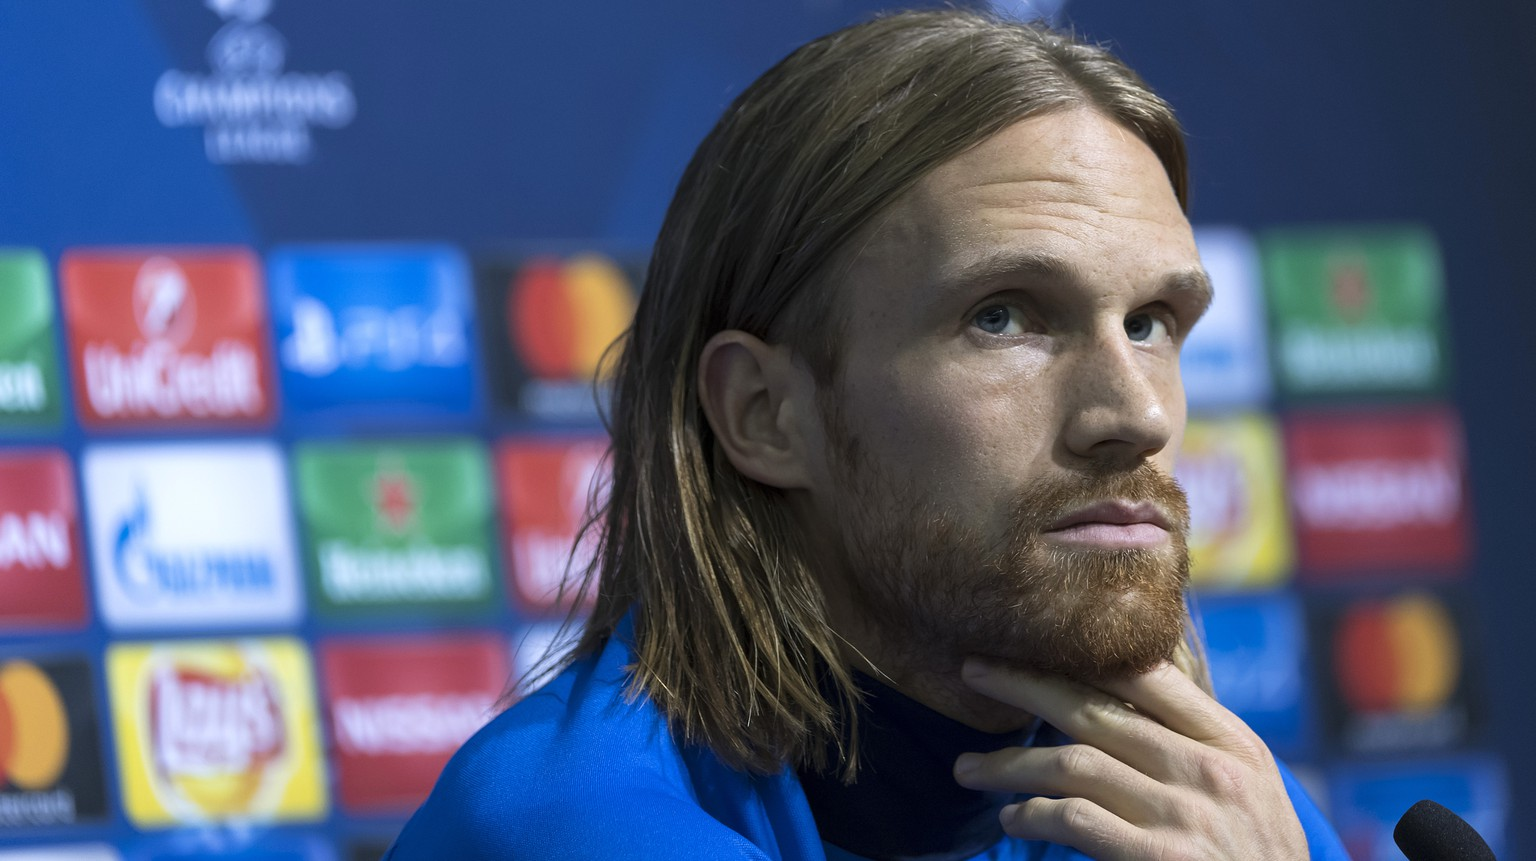 Michael Lang of Switzerland's FC Basel 1893 speaks during a press conference in the Natsionalen Stadion Vasil Levski in Sofia, Bulgaria, on Tuesday, November 22, 2016. Switzerland's FC Basel 1893 is scheduled to play an UEFA Champions League Group stage Group A matchday 5 soccer match against Bulgaria's PFC Ludogorets Razgrad on Wednesday, November 23, 2016. (KEYSTONE/Georgios Kefalas)